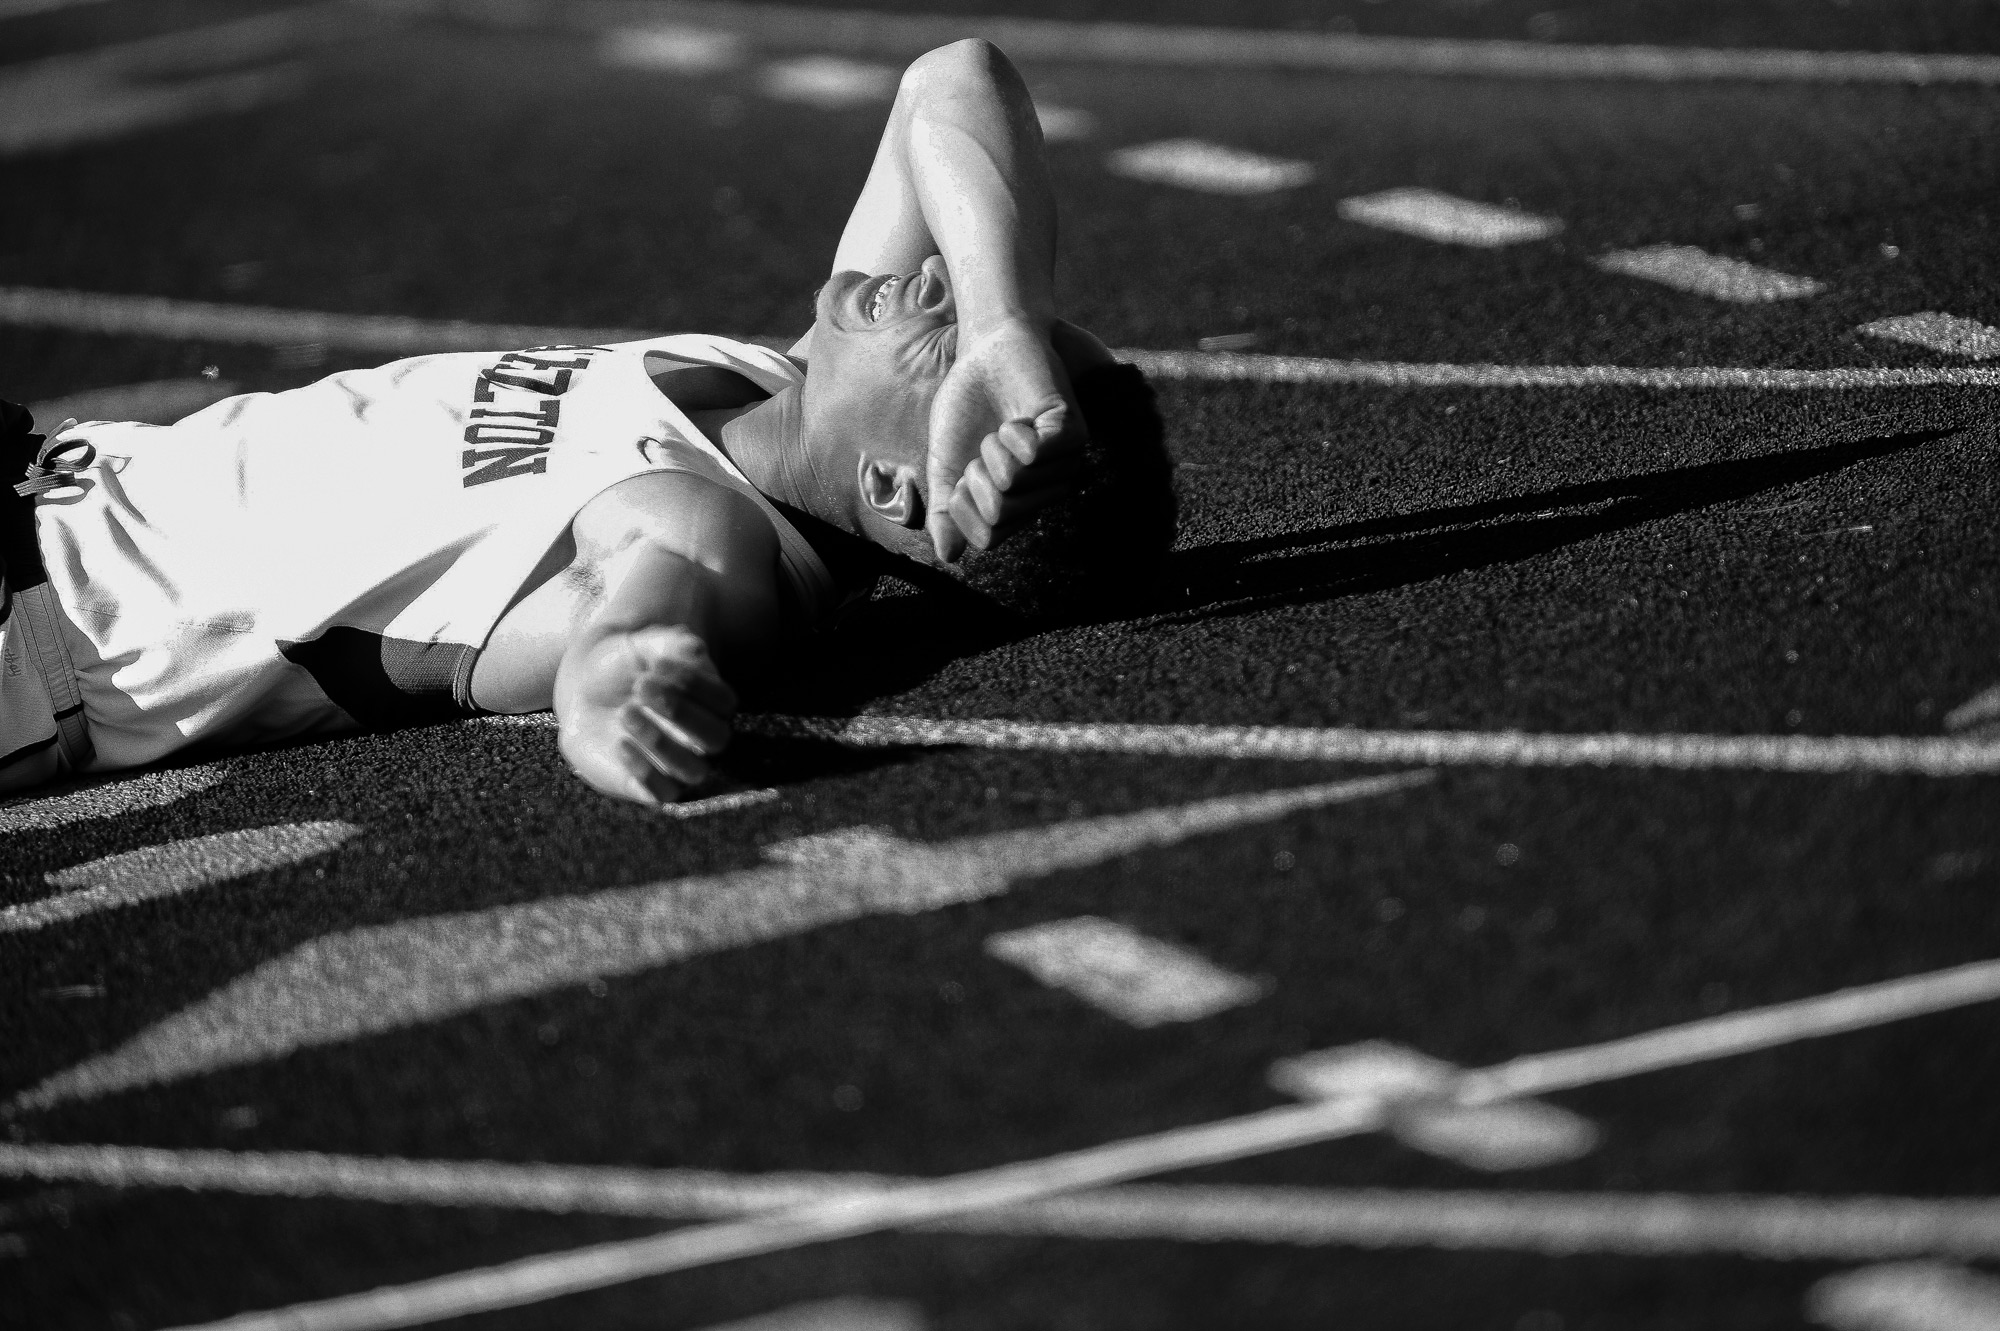 Miles Walker of Atholton High School rests on the track after the boy's 400 meter dash on the second day of the Howard County Track Championships at Wilde Lake High School in Columbia, Maryland on May 6, 2014.